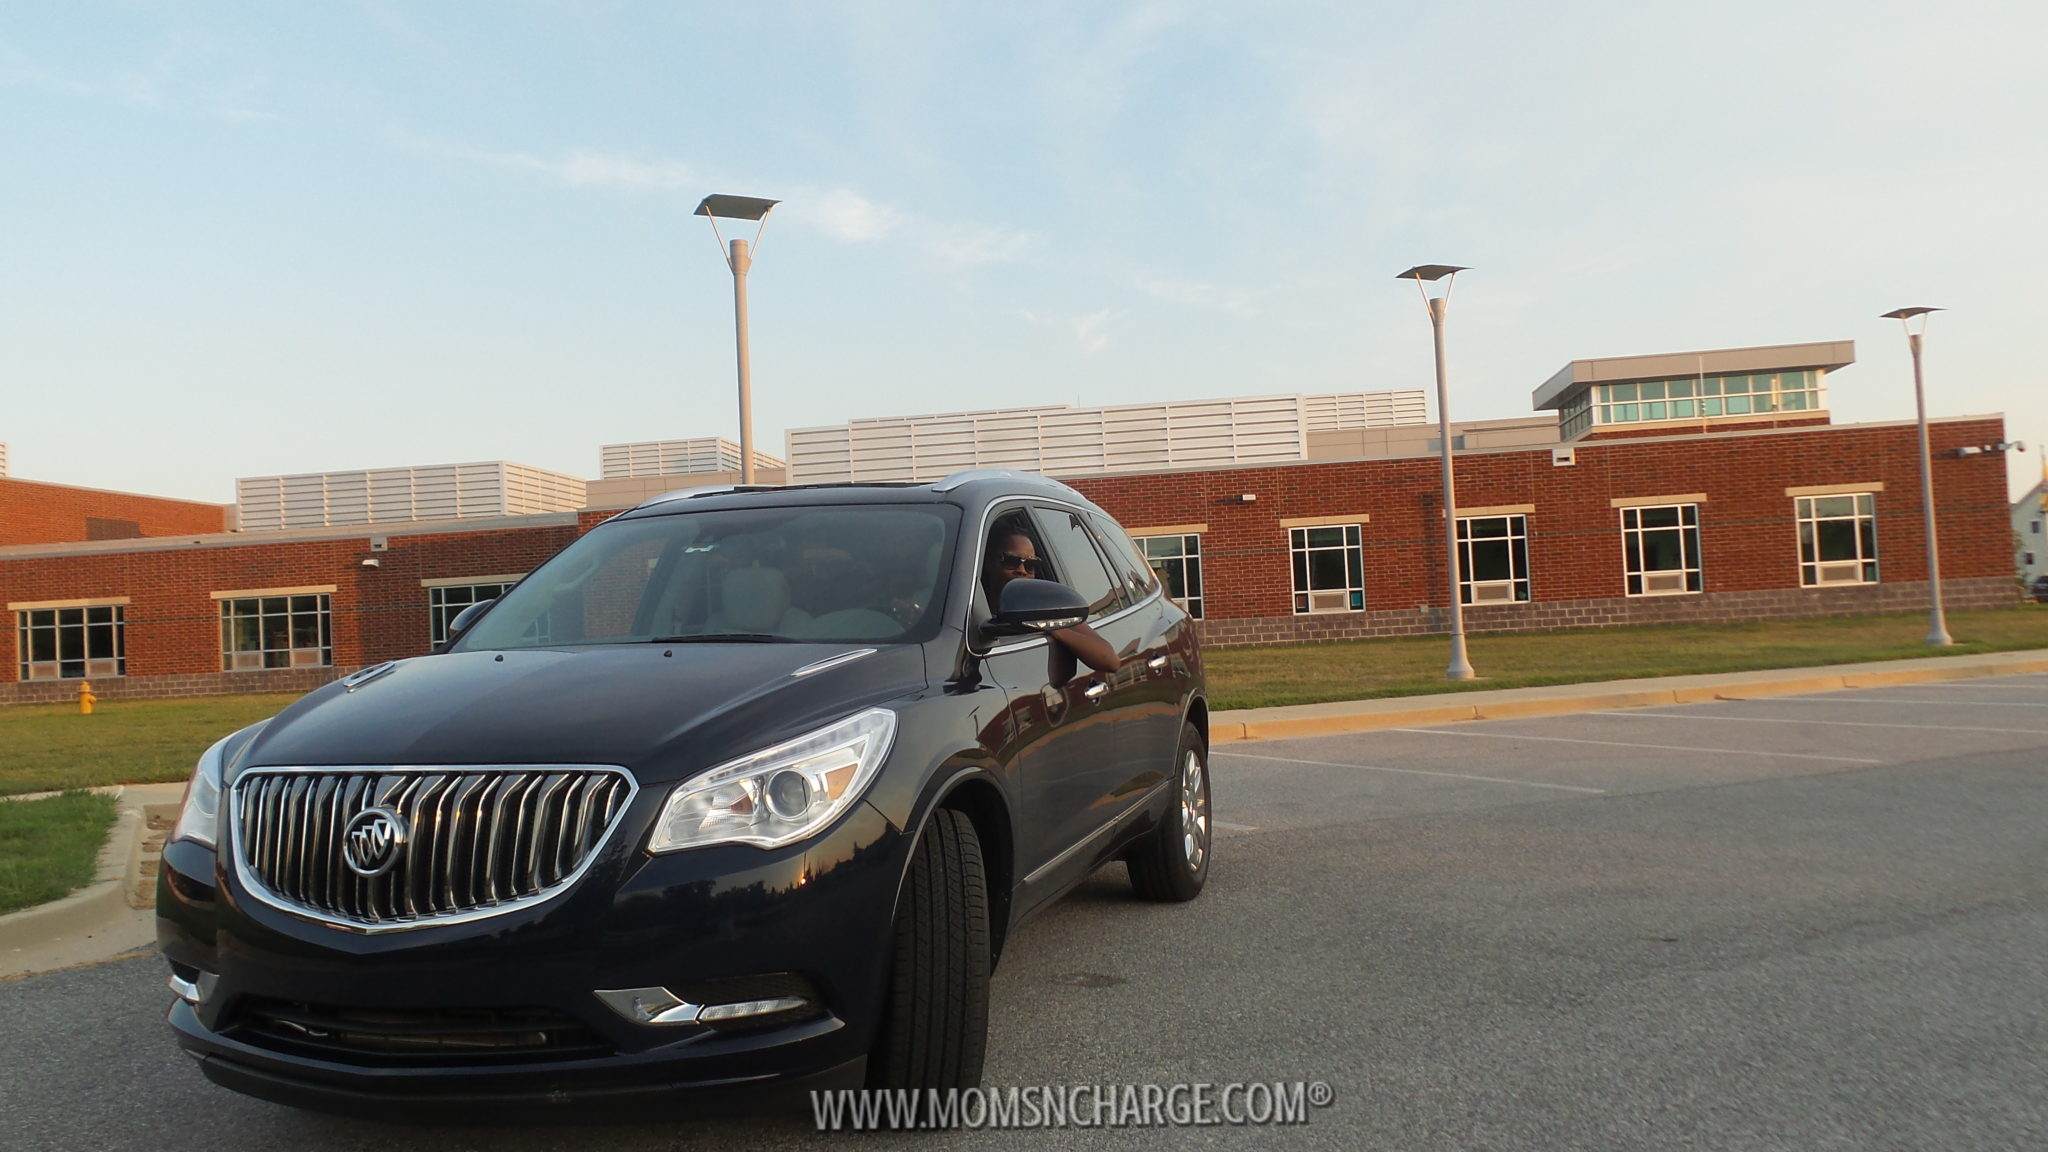 the enclaves car suv buick row vehicles side enclave lady seat